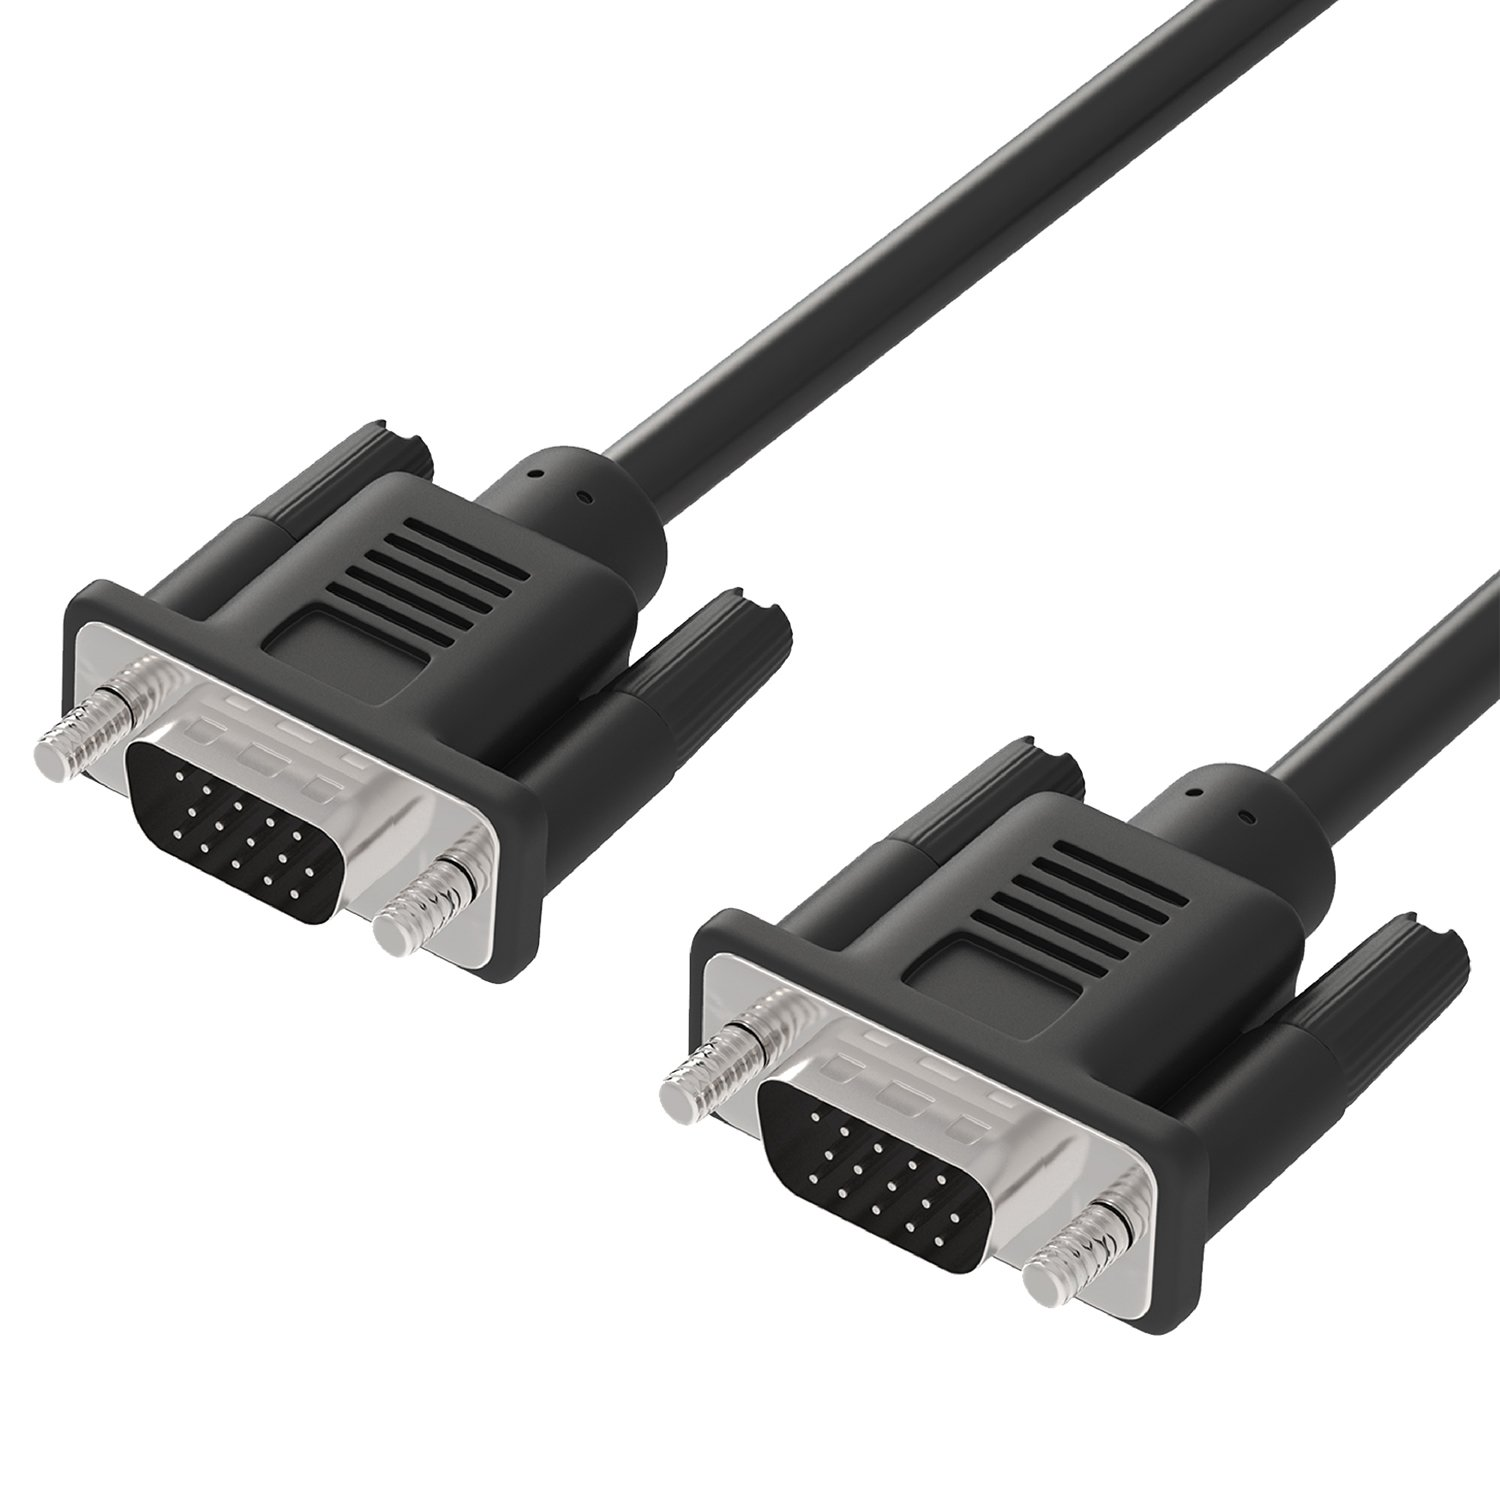 Fosmon High Resolution Monitor Cable (Male VGA to Male VGA) -10ft HD1848